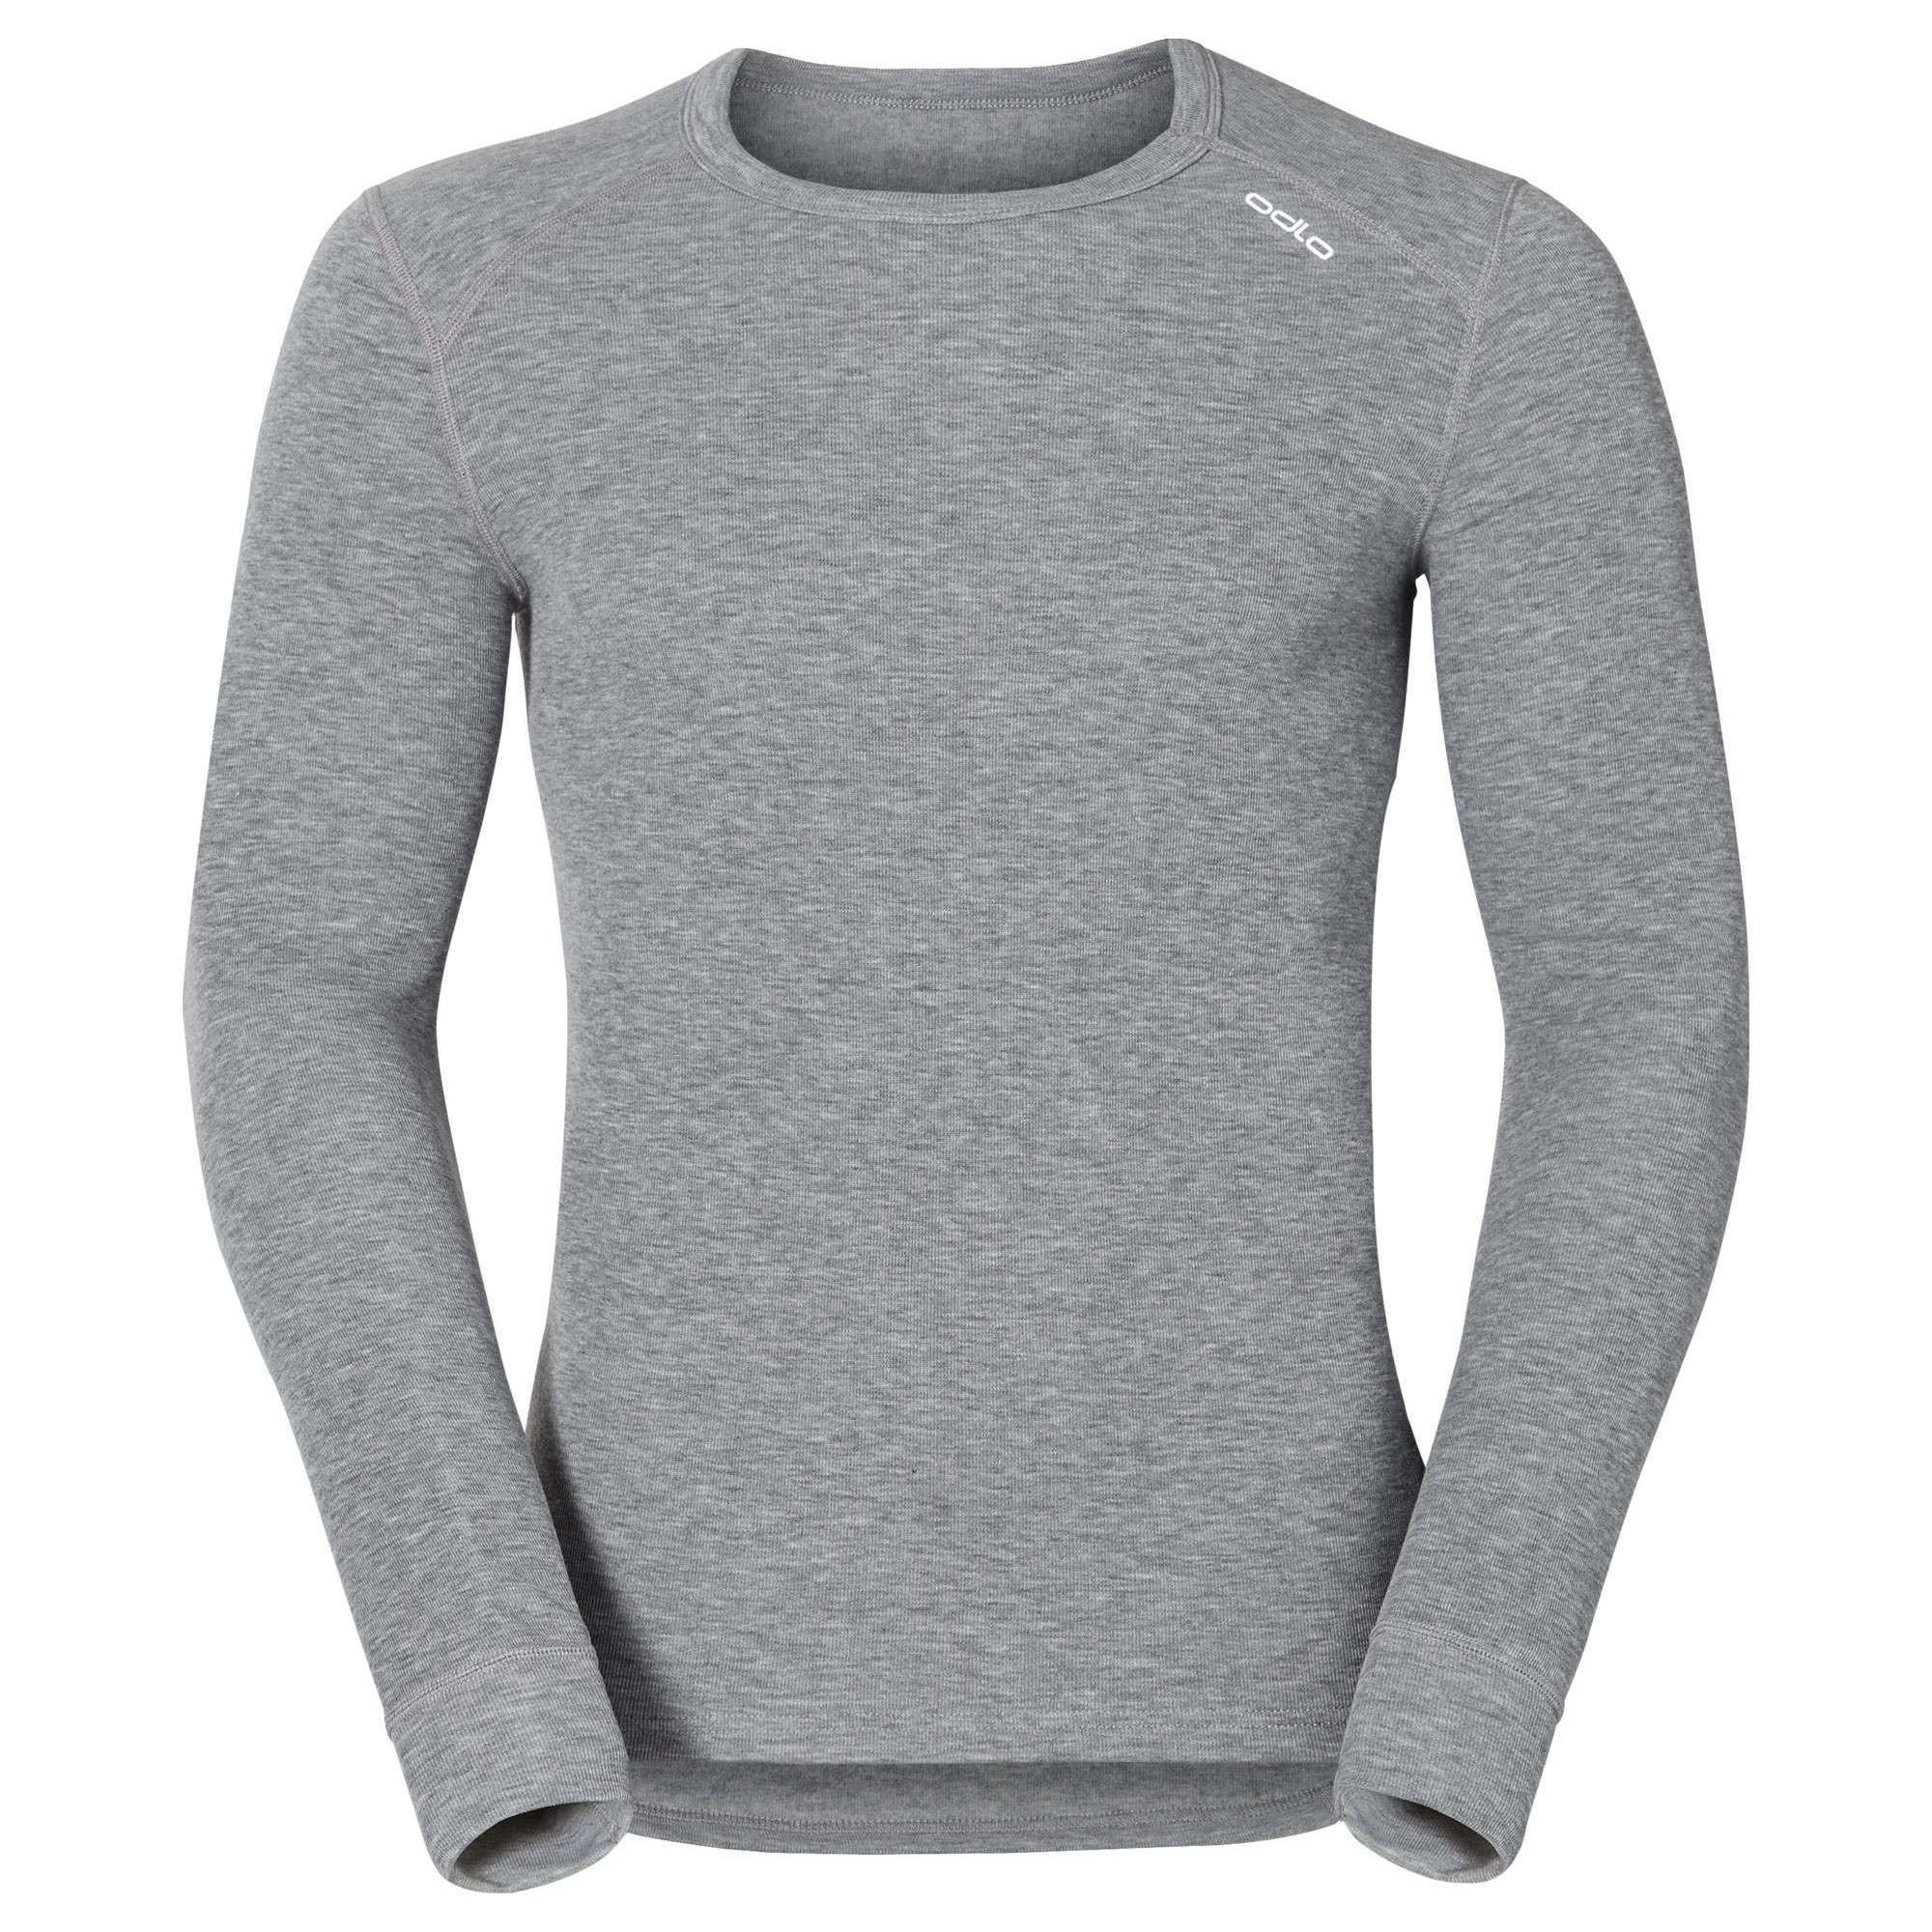 Термофутболка Odlo L/S Crew Neck Warm (152022 Grey Melange L)